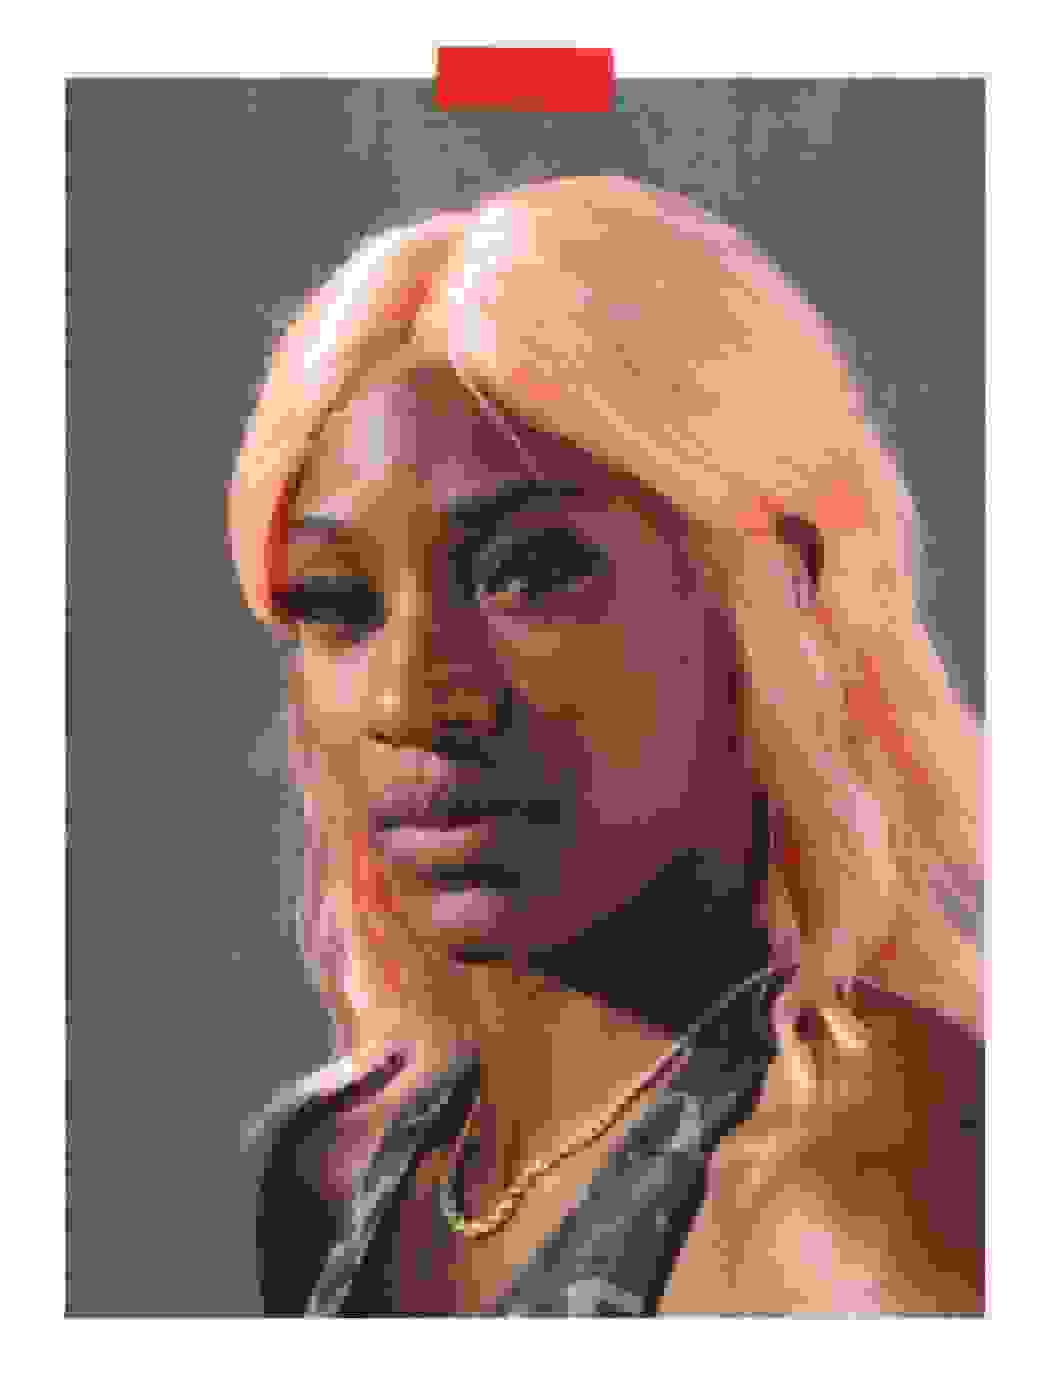 An image showing a portrait of Shaunae Miller-Uibo